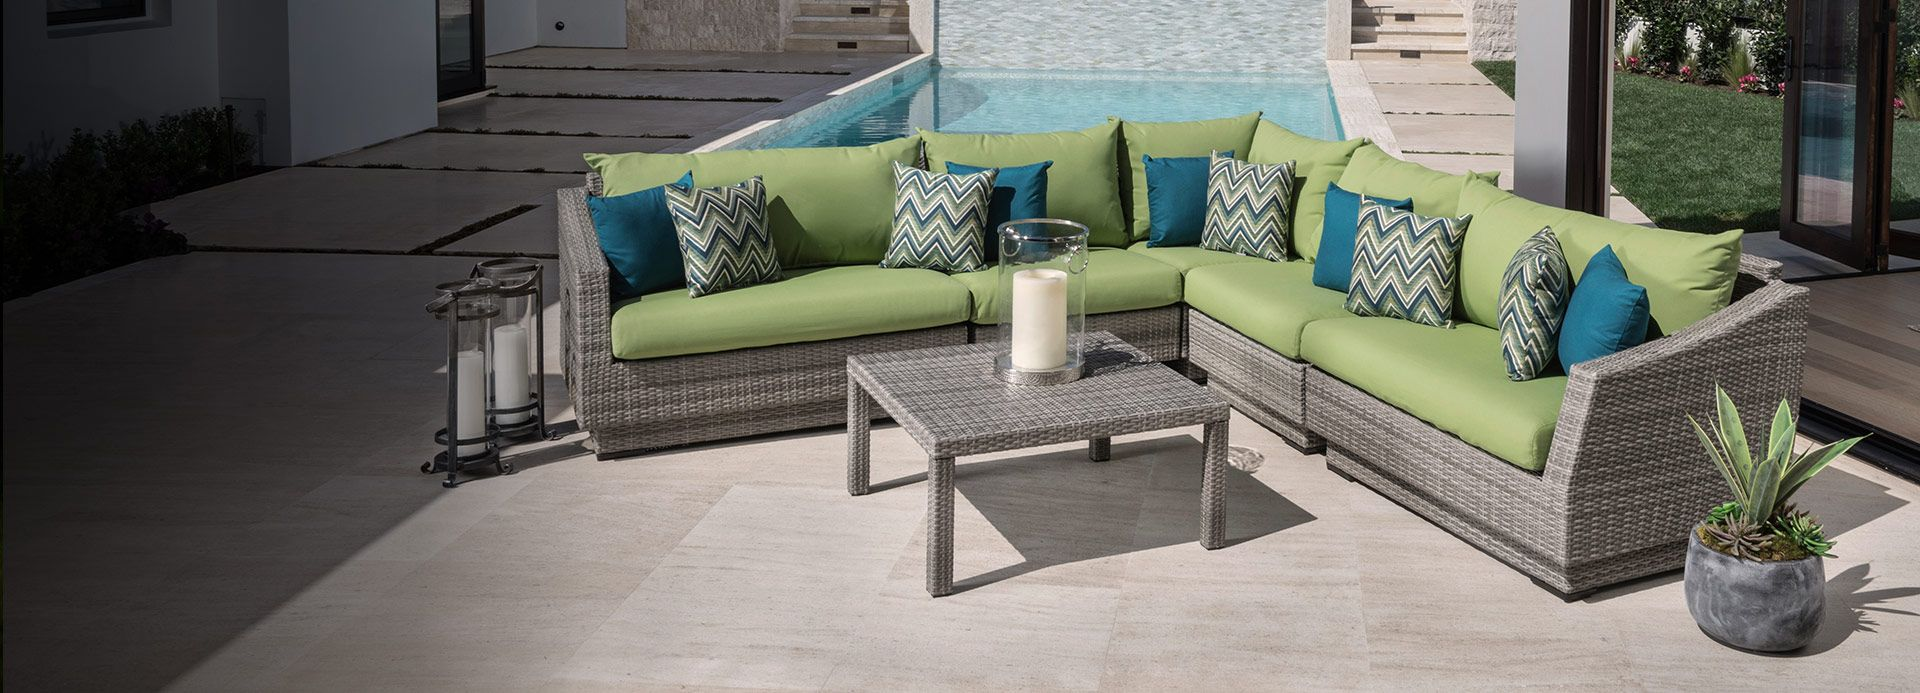 Modern outdoor patio/pool deck furniture. Green and teal cushions ...